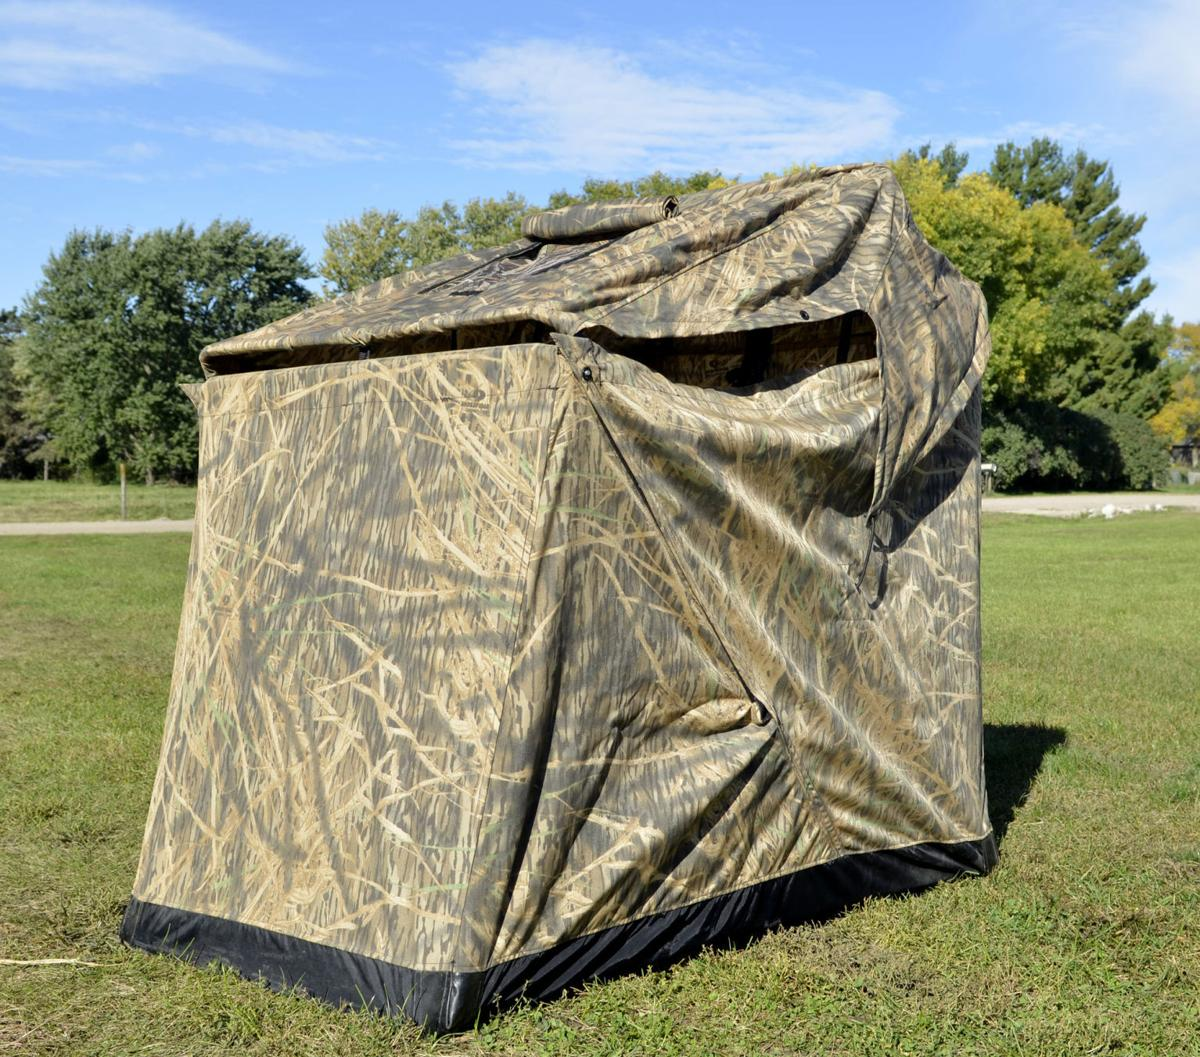 up doghouse for poles by blind pop hunting related gear mesmerizing guide camo seemly out flare made ameristep blinds keywords impressive ground ga